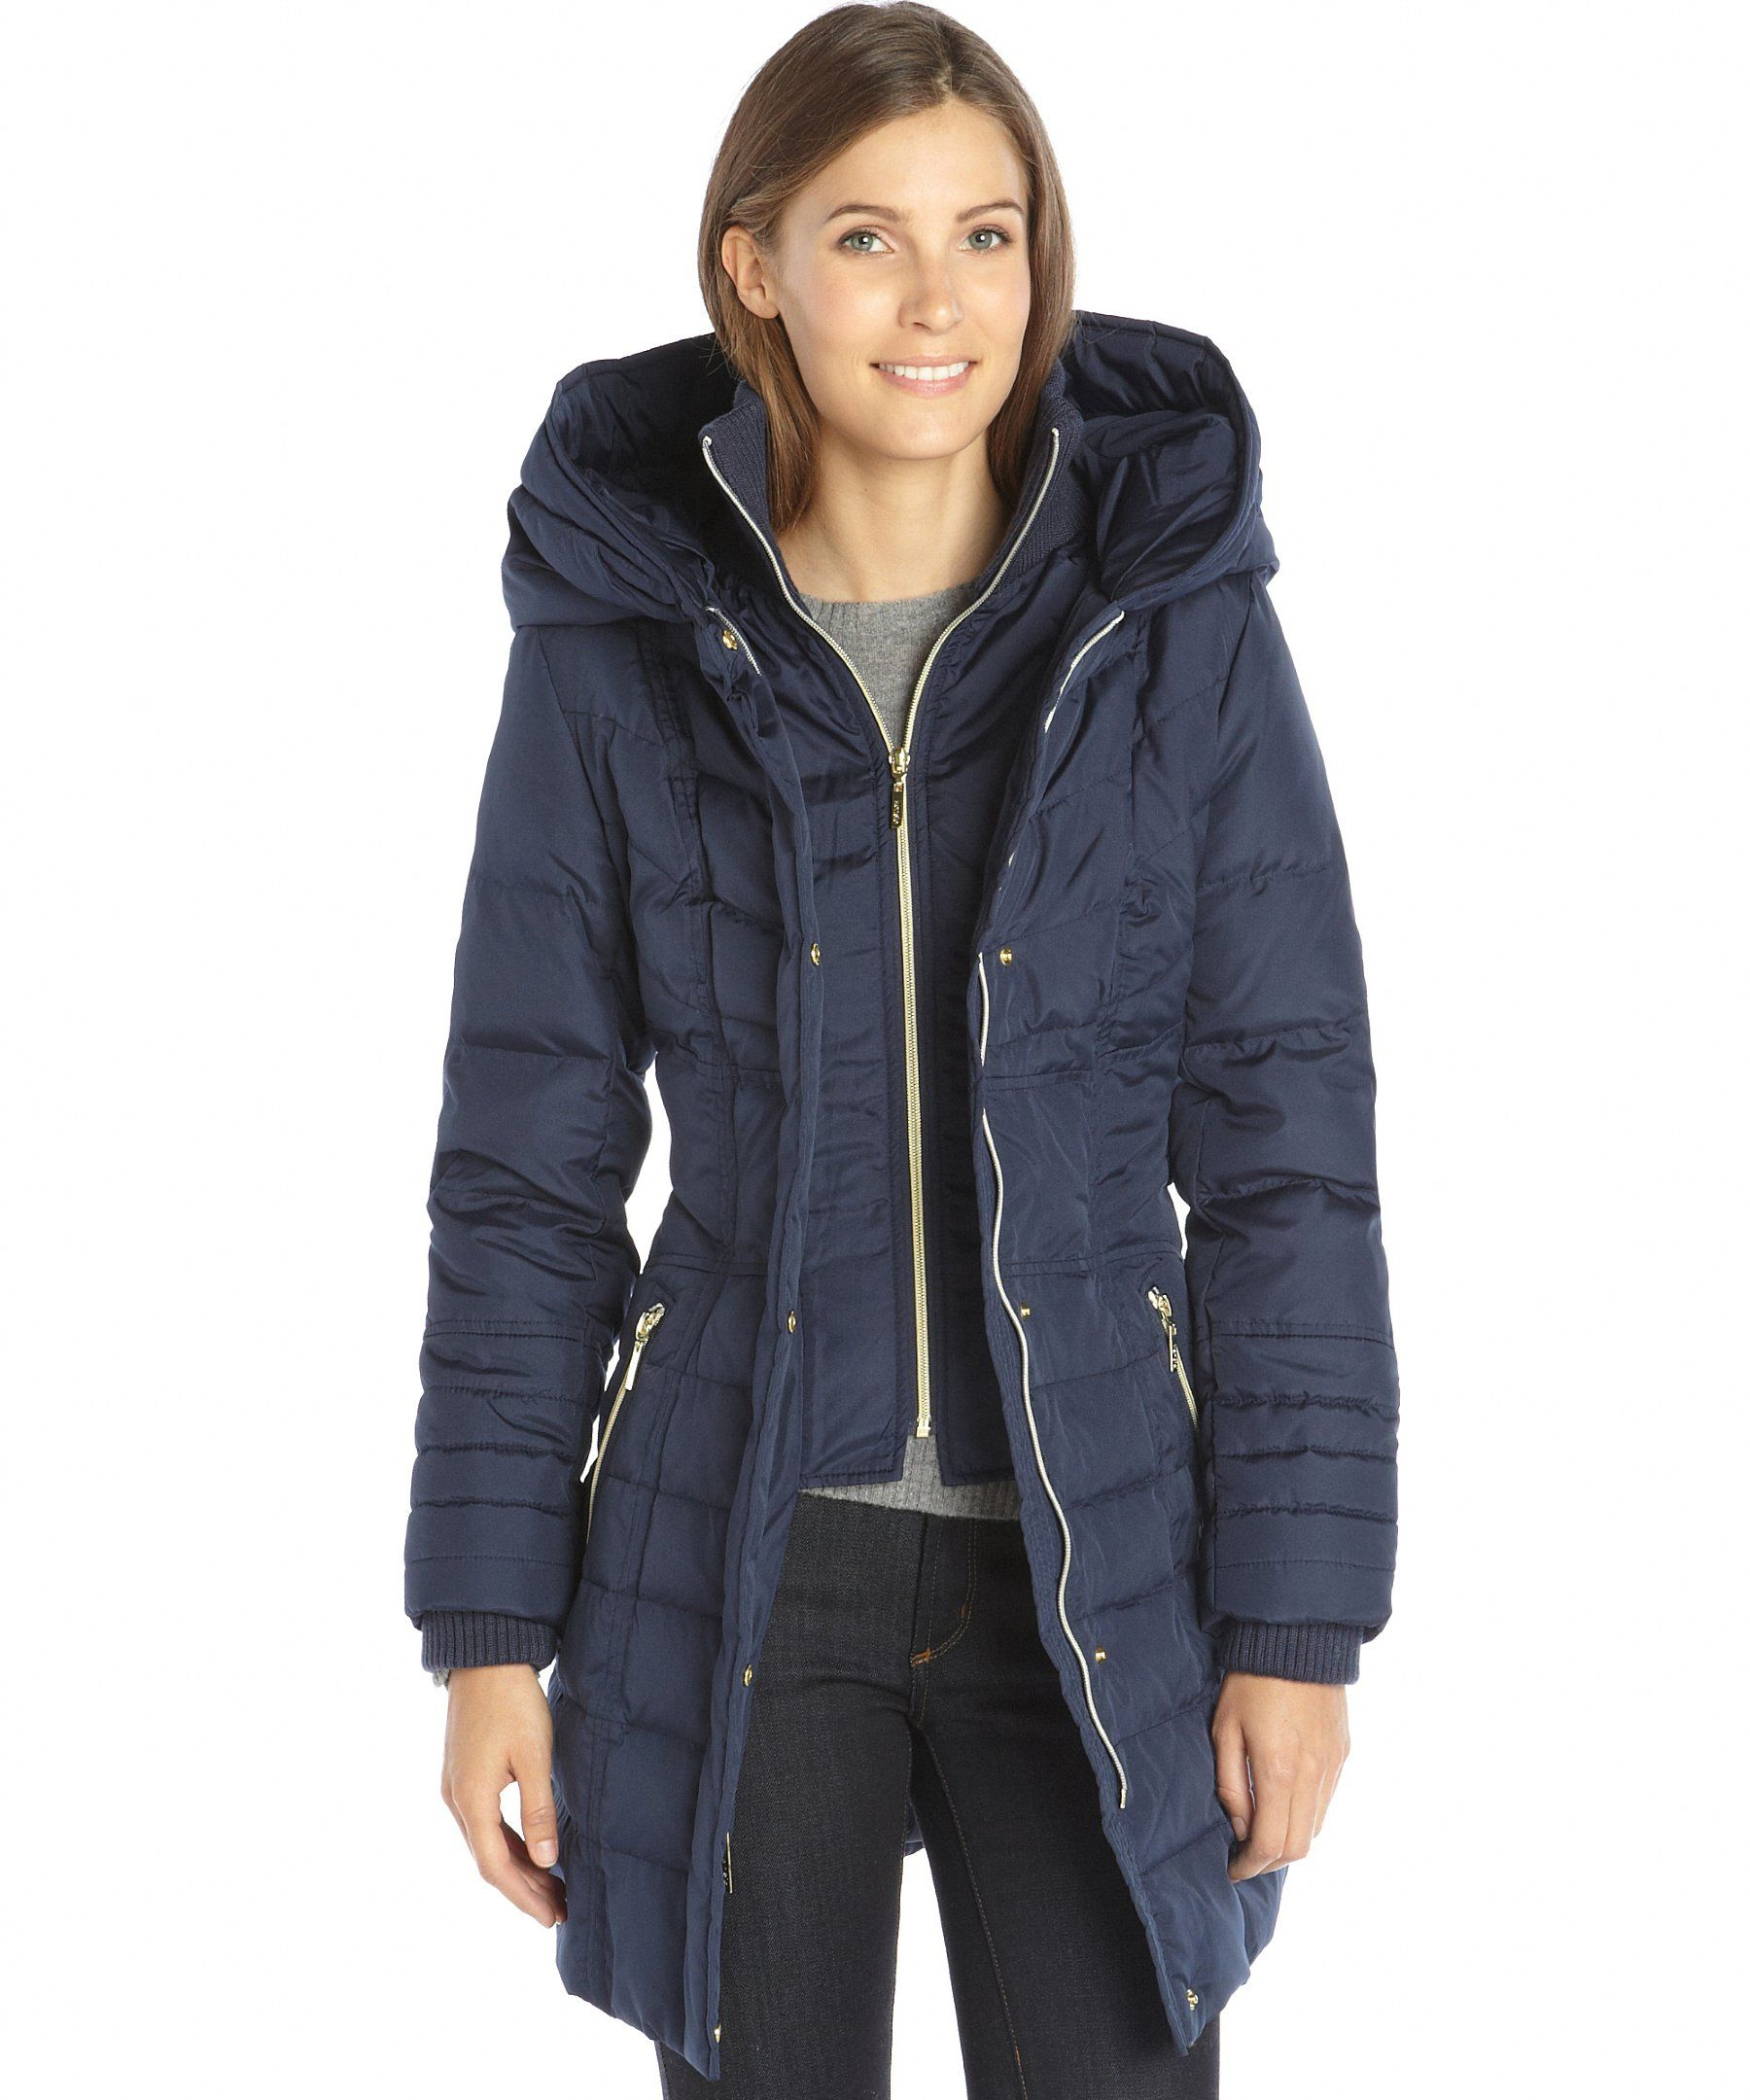 Kensie navy quilted woven belted oversize hooded down filled coat | BLUEFLY $100